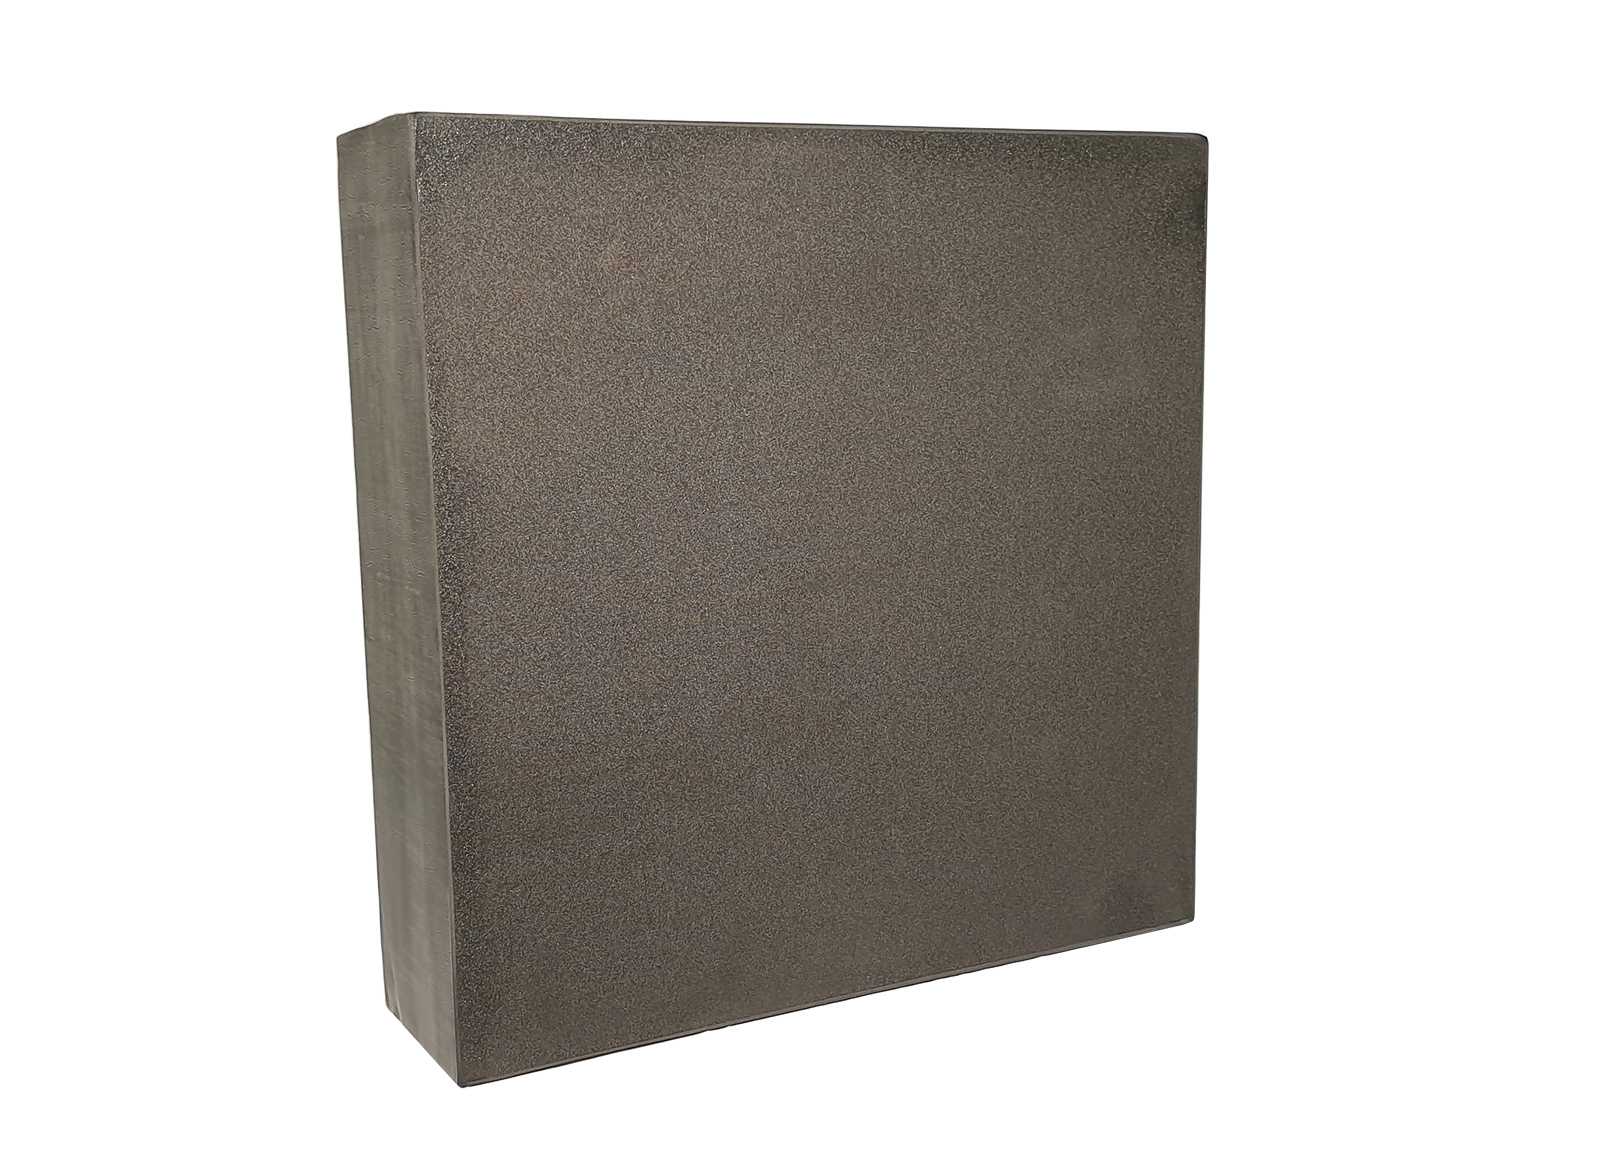 DISPORT BATTIFRECCIA IN SCHIUMA PROFI 80X80X21 CM ULTRA DENSITY